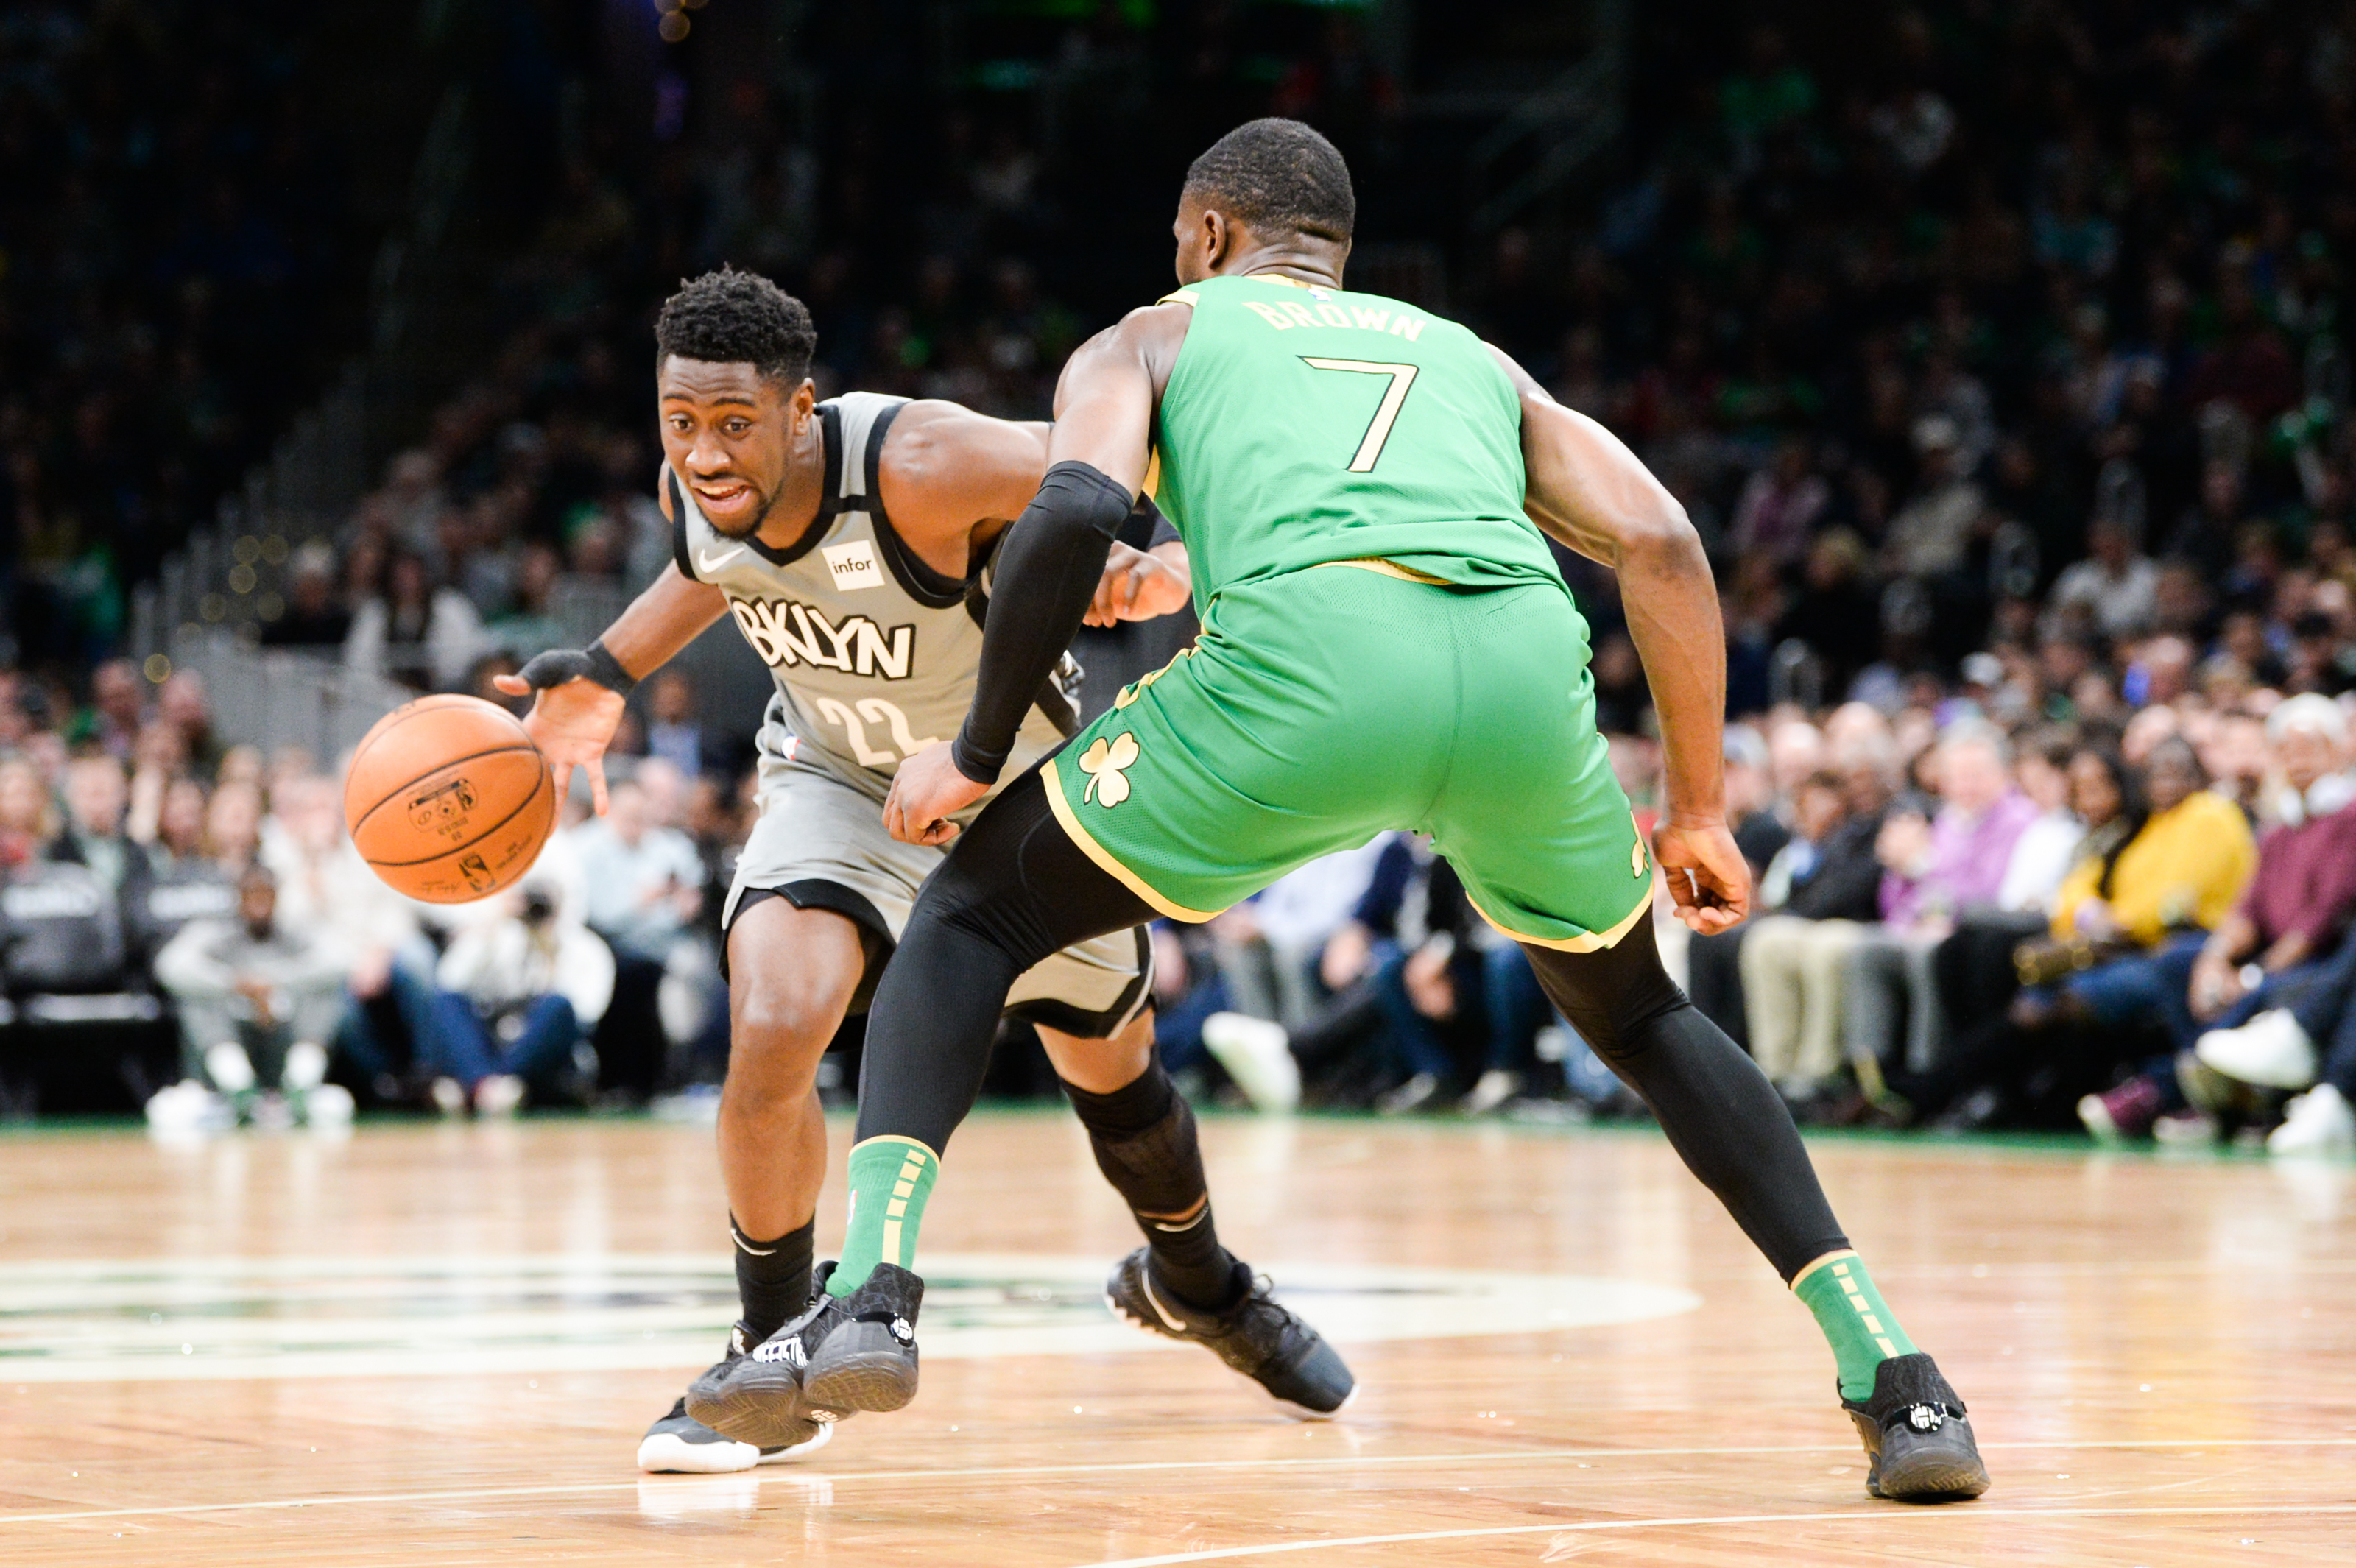 Michigan Basketball Caris Levert Shows Star Potential With 51 Point Game